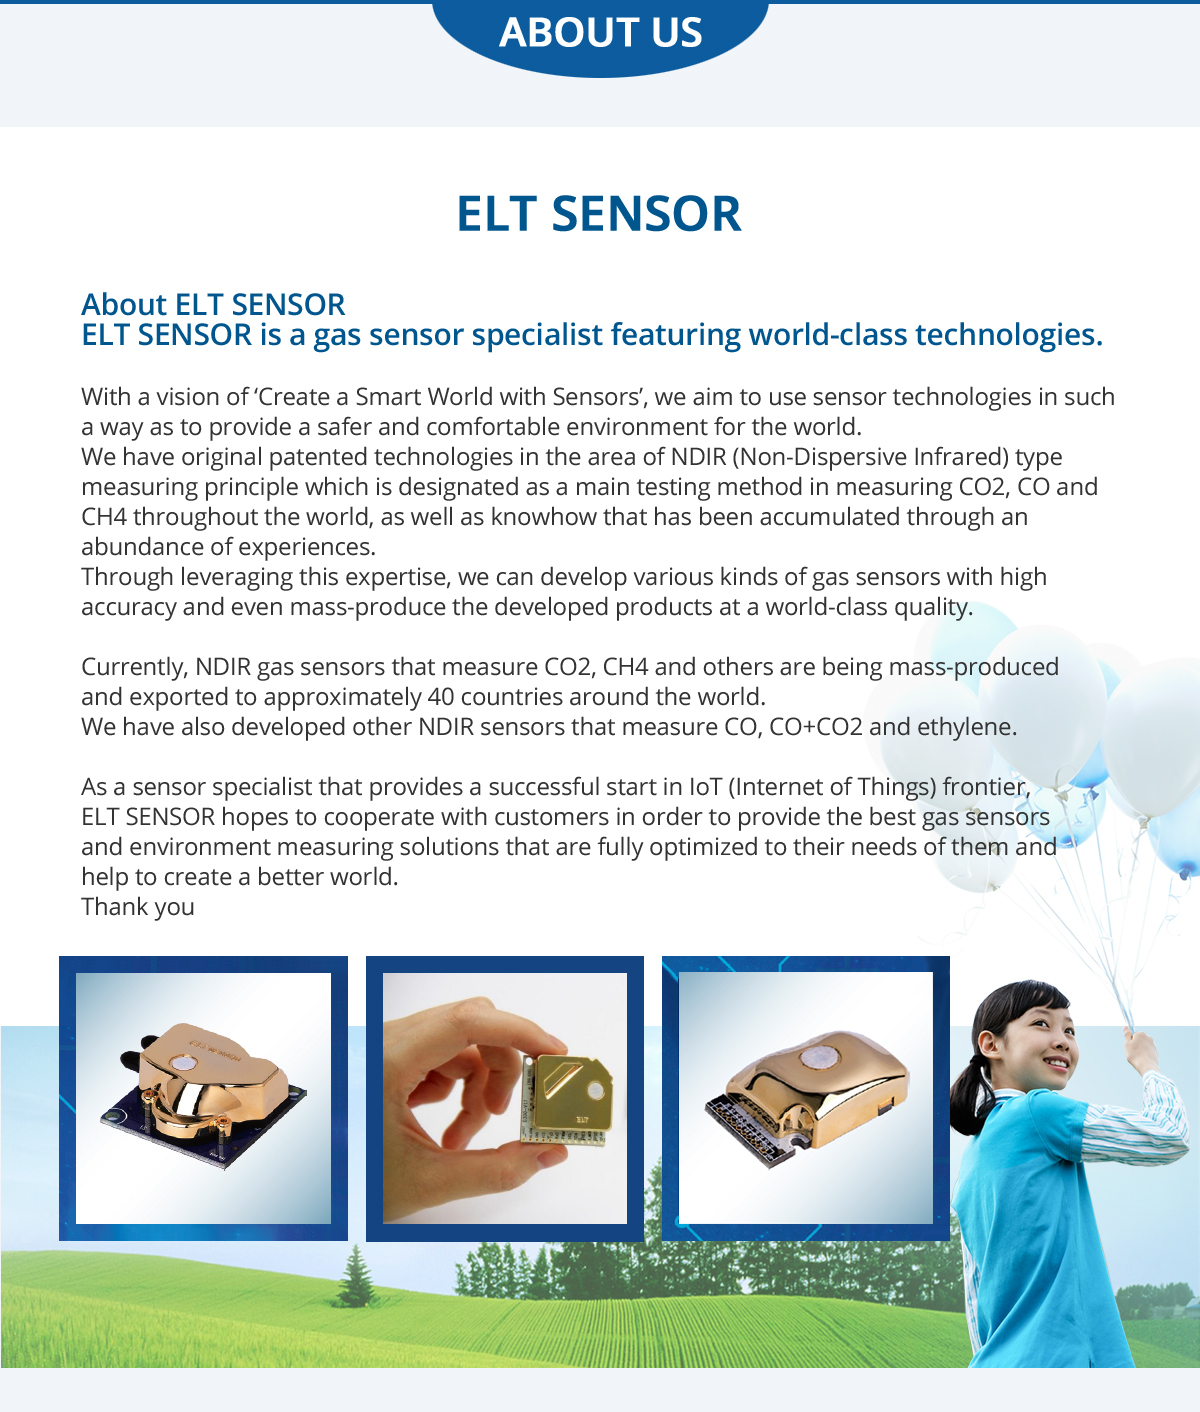 ABOUT US ELT SENSOR About ELT SENSOR ELT SENSOR is a gas sensor specialist featuring world-class technologies. With a vision of 'Create a Smart World with Sensors', we aim to use sensor technologies in such a way as to provide a safer and comfortable environment for the world. We have original patented technologies in the area of NDIR (Non-Dispersive Infrared) type measuring principle which is designated as a main testing method in measuring CO2, CO and CH4 throughout the world, as well as knowhow that has been accumulated through an abundance of experiences. Through leveraging this expertise, we can develop various kinds of gas sensors with high accuracy and even mass-produce the developed products at a world-class quality. Currently, NDIR gas sensors that measure CO2, CH4 and others are being mass-produced and exported to approximately 40 countries around the world. We have also developed other NDIR sensors that measure CO, CO+CO2 and ethylene. As a sensor specialist that provides a successful start in IoT (Internet of Things) frontier, ELT SENSOR hopes to cooperate with customers in order to provide the best gas sensors and environment measuring solutions that are fully optimized to their needs of them and help to create a better world. Thank you